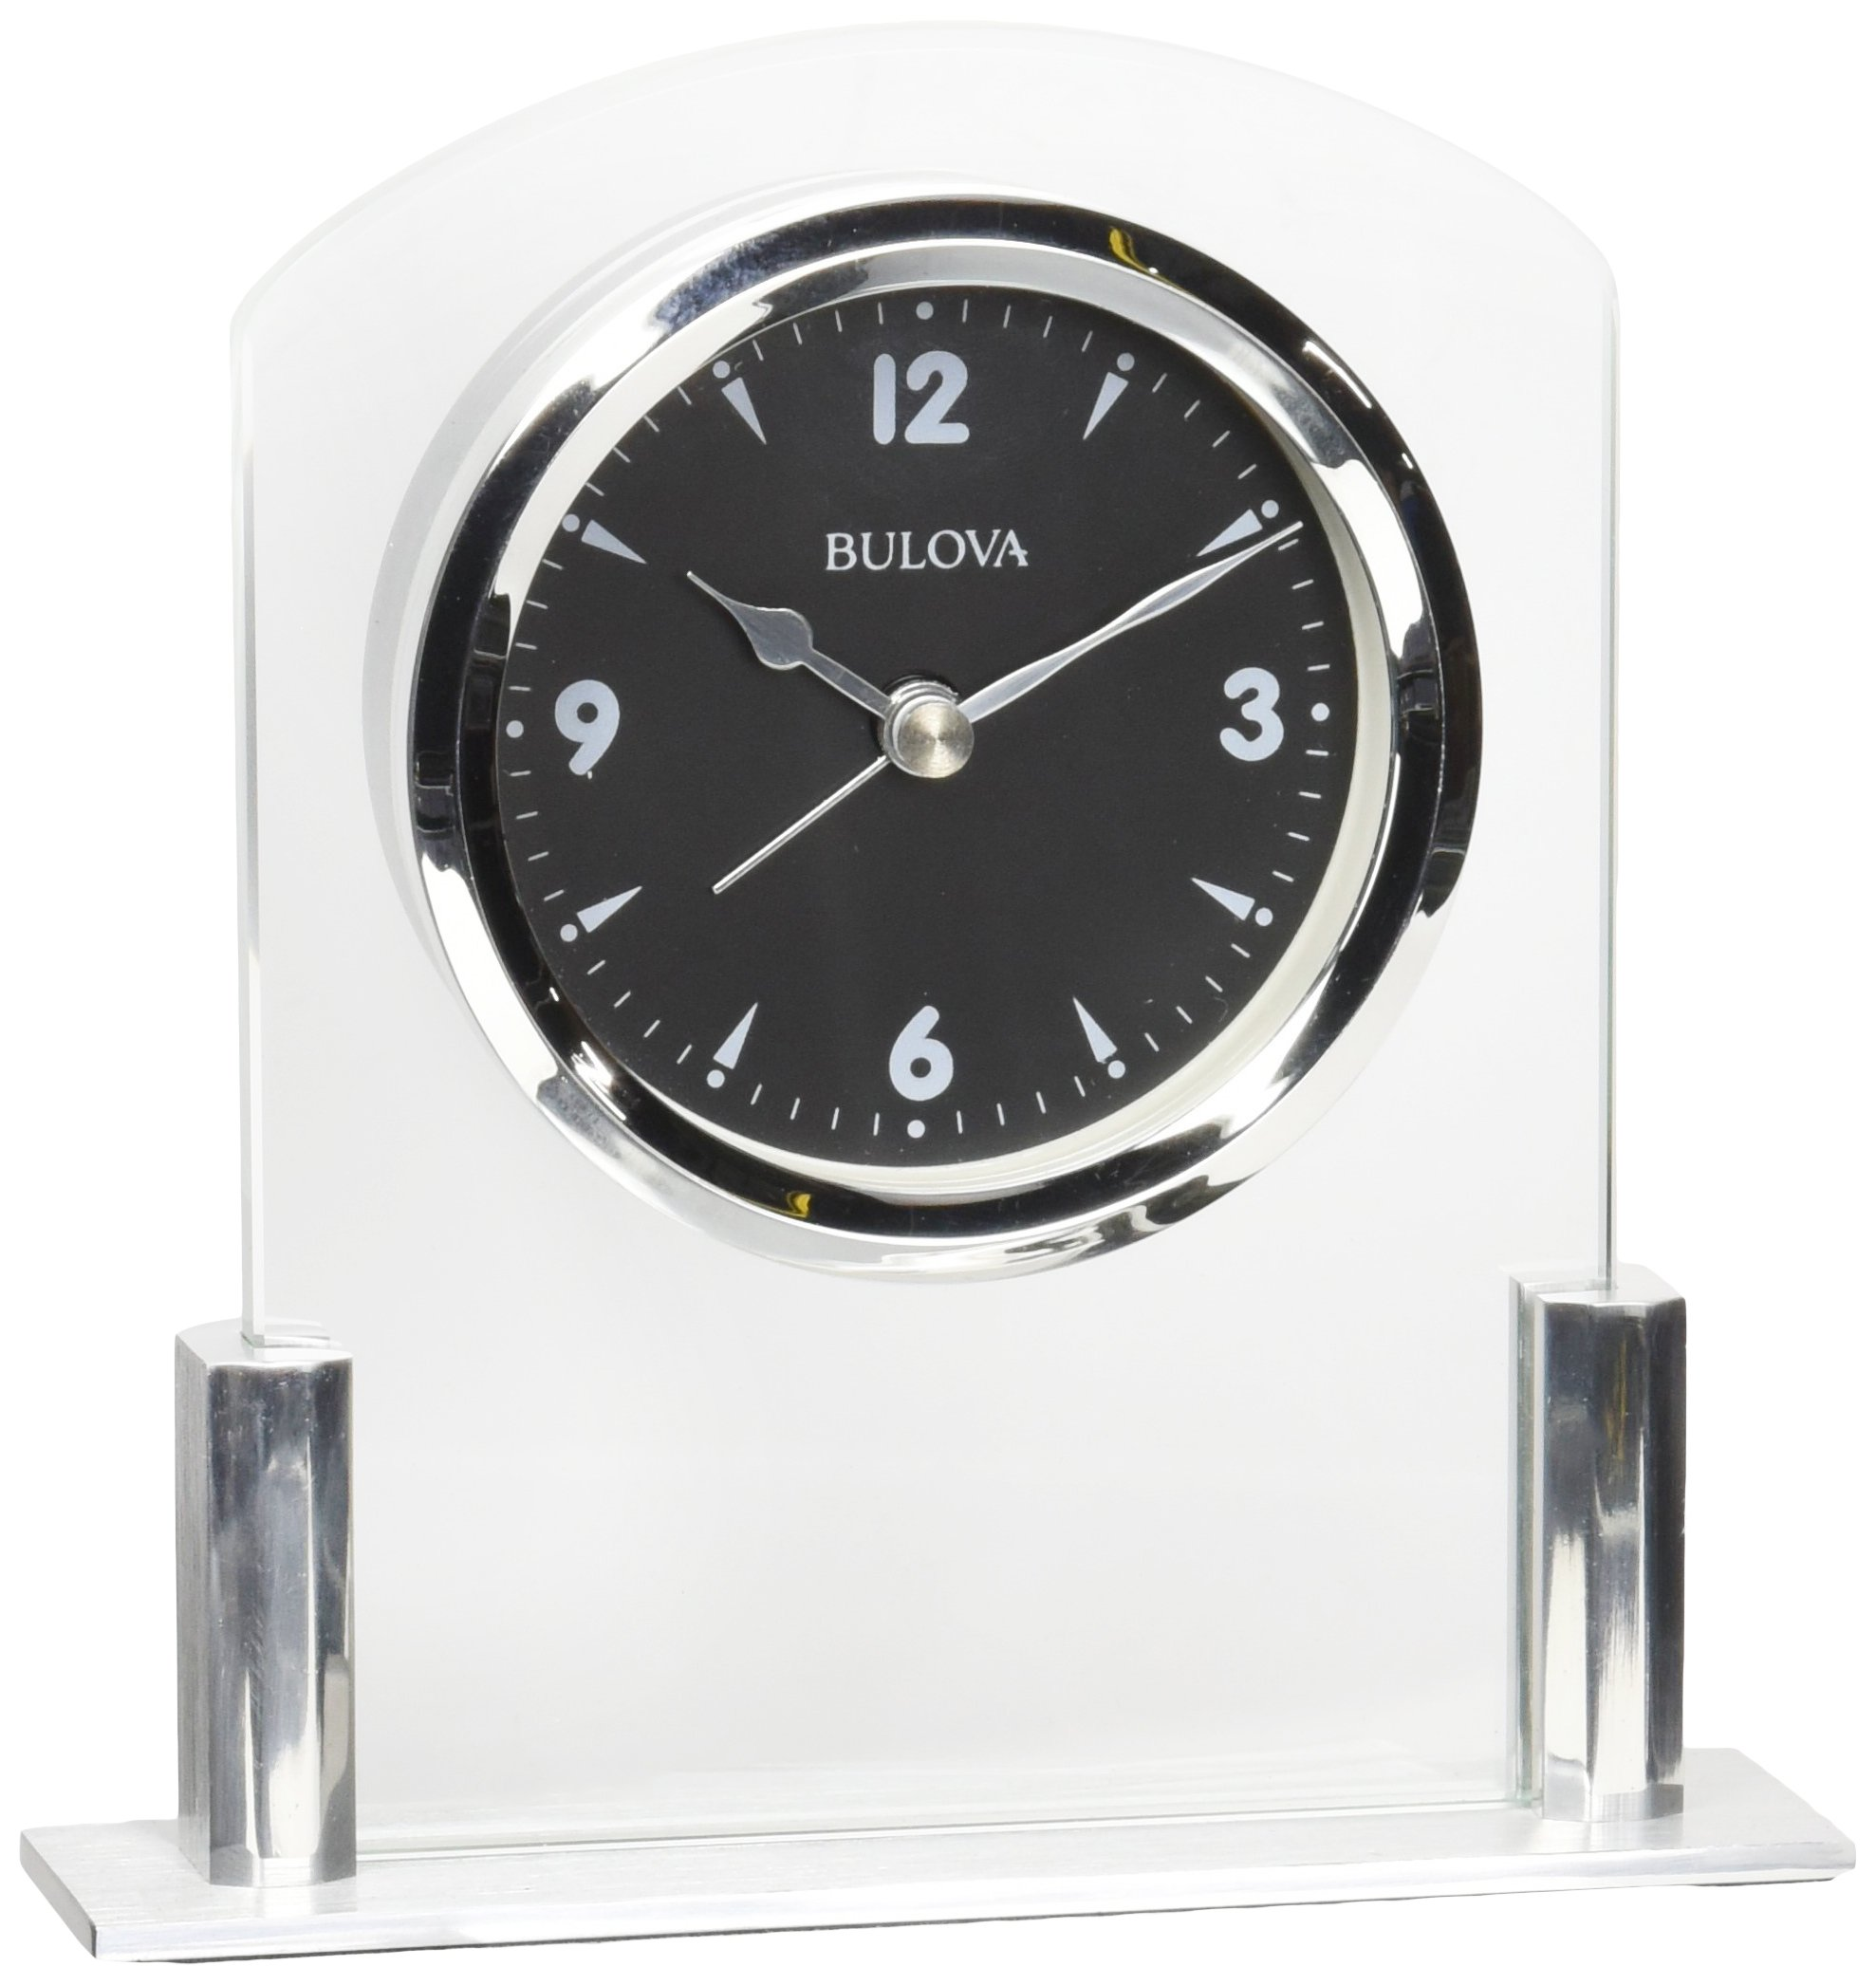 Bulova B5022 Newton Table Clock, Polished Silver-Tone Finish - Compact tabletop design with alarm Floating black dial with contrasting white numerals and hour markers suspended in clear beveled glass frame Protective glass lens - clocks, bedroom-decor, bedroom - 81CpsTOmNML -